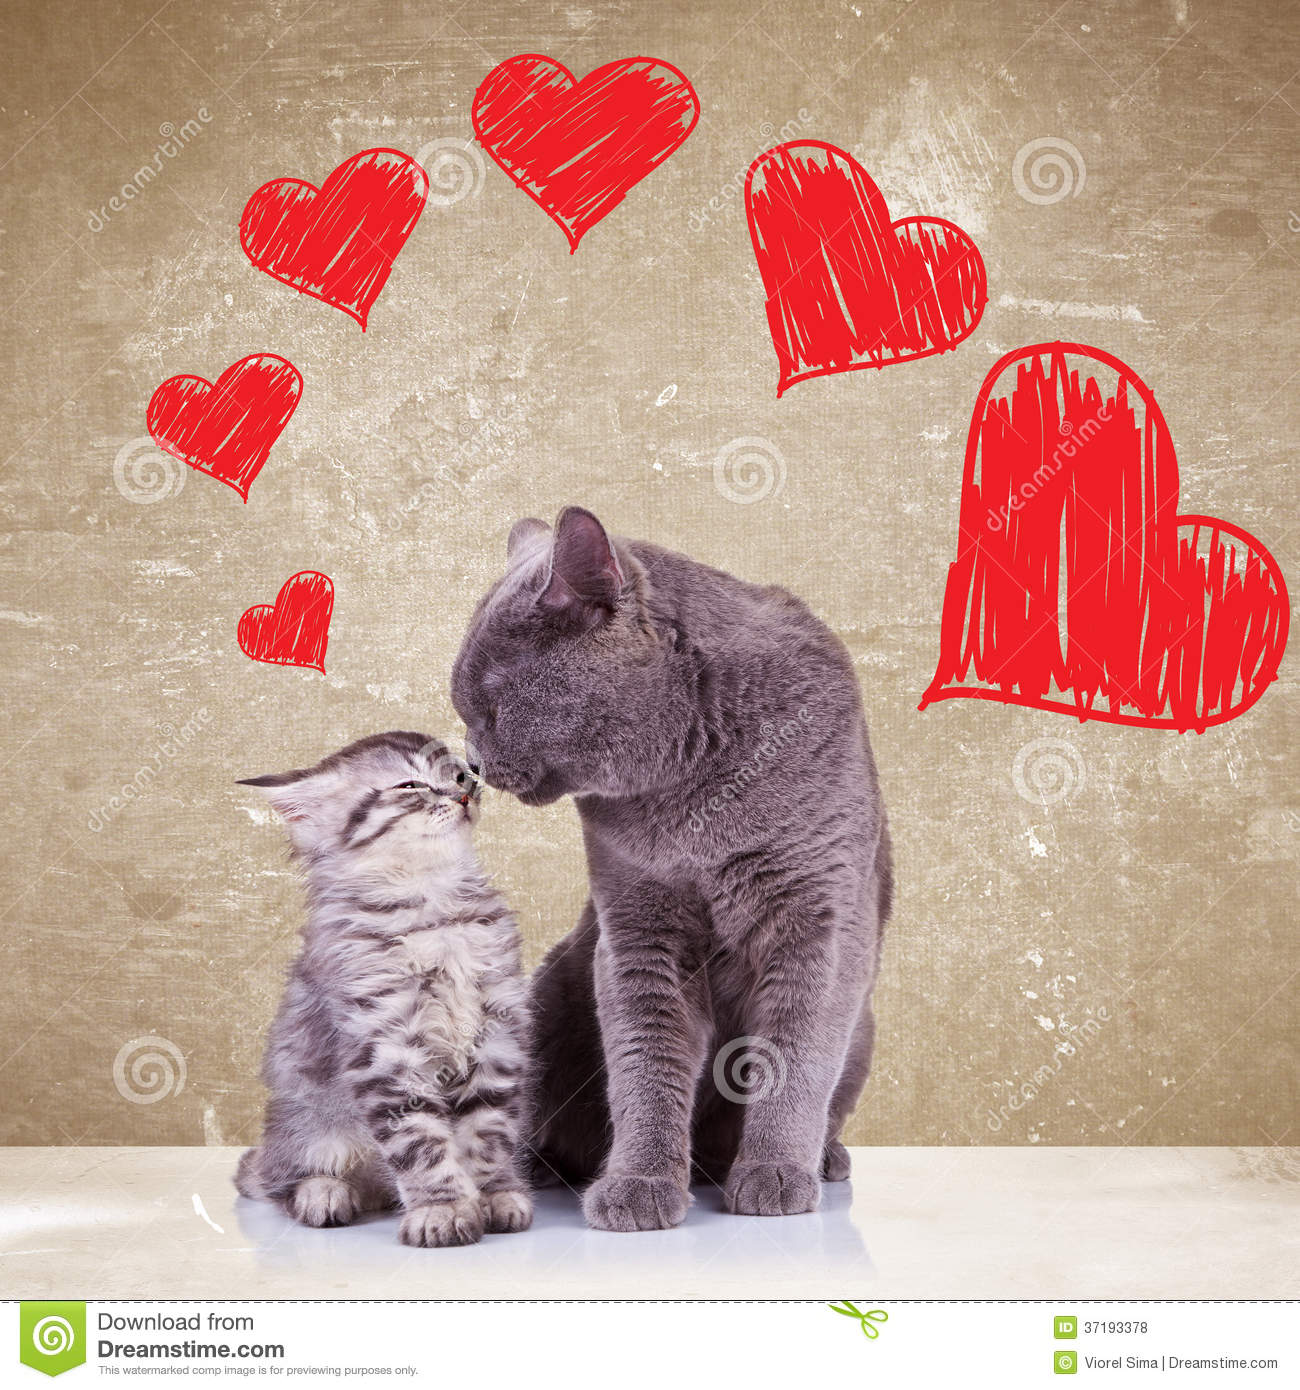 Catnip Toys For Valentine S Day : Cats kissing on valentines day stock photo image